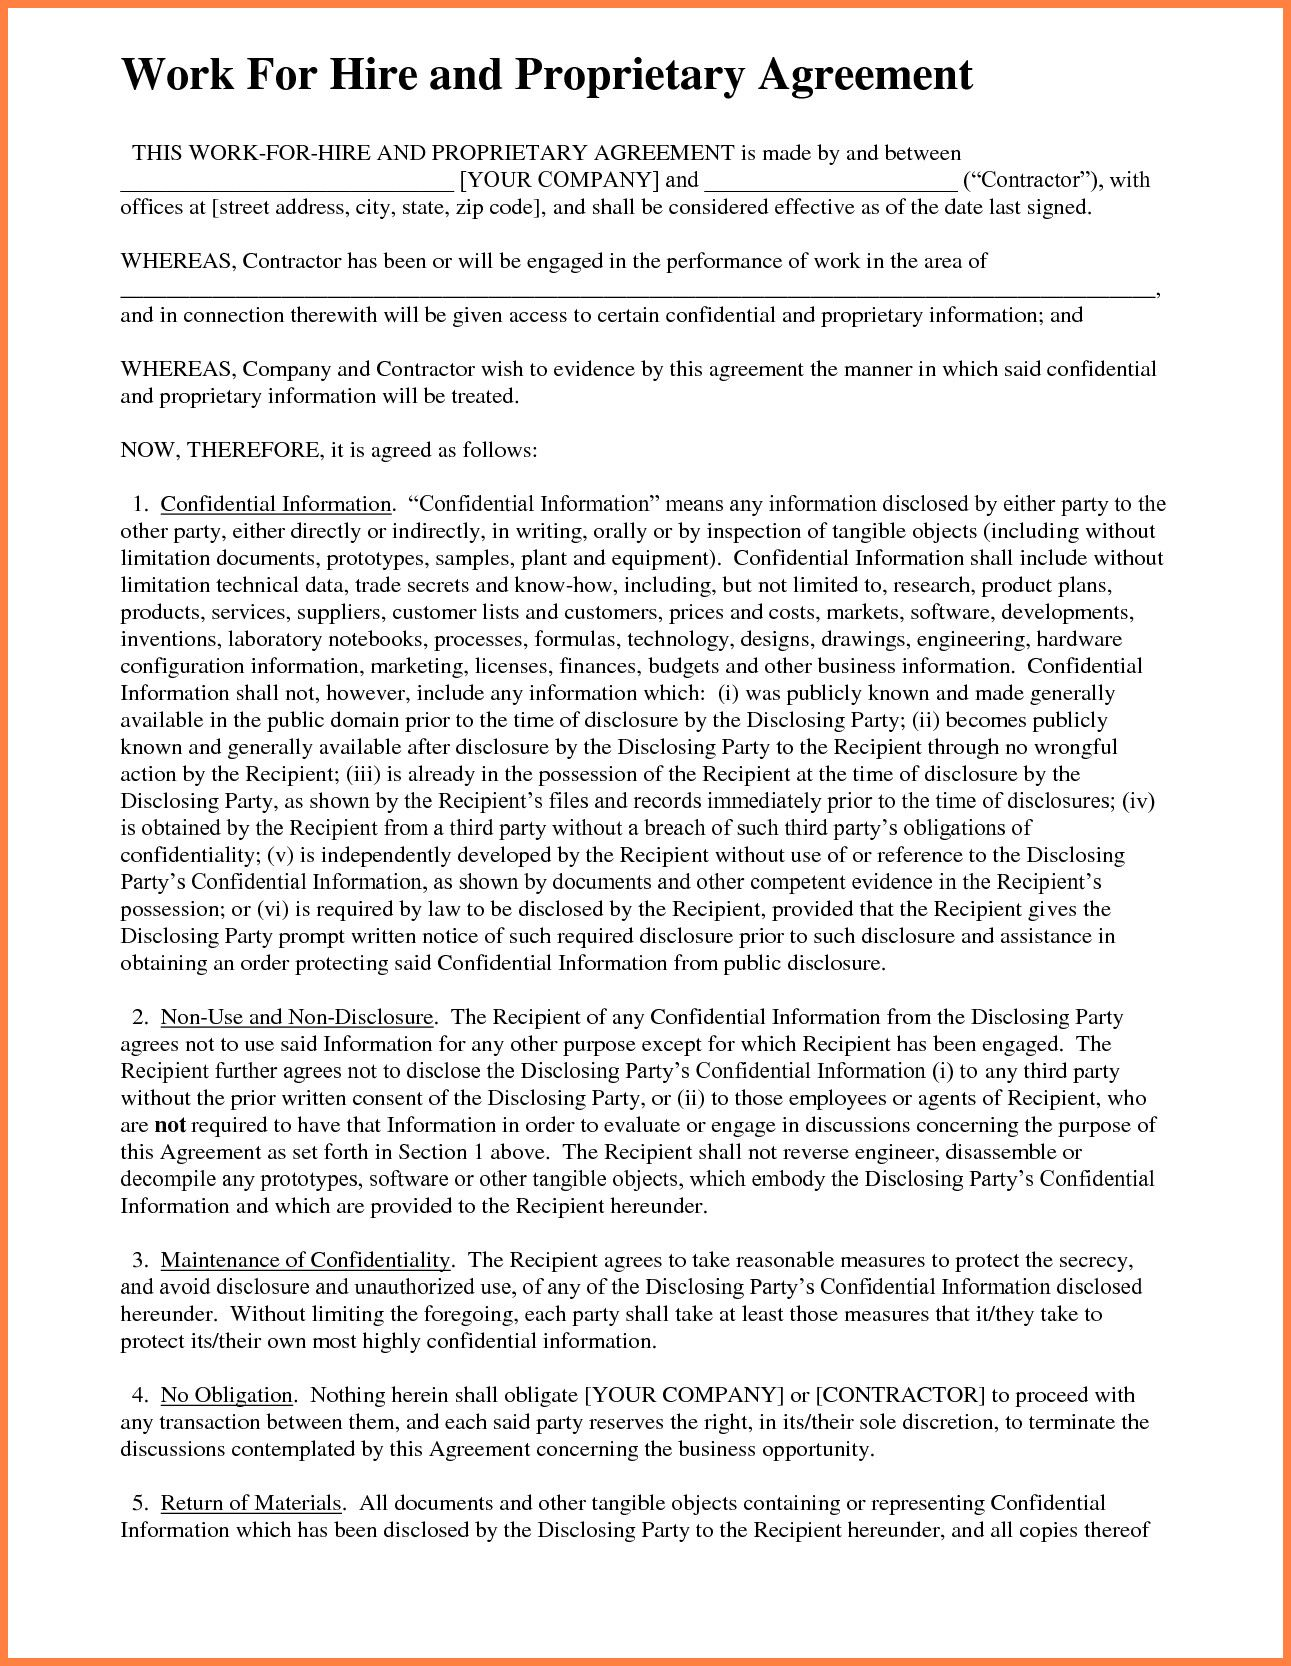 Work For Hire Contract Template Lovely 7 Sample Work For Hire Agreement Template Work For Hire Contract Template Contract Contract to hire agreement template